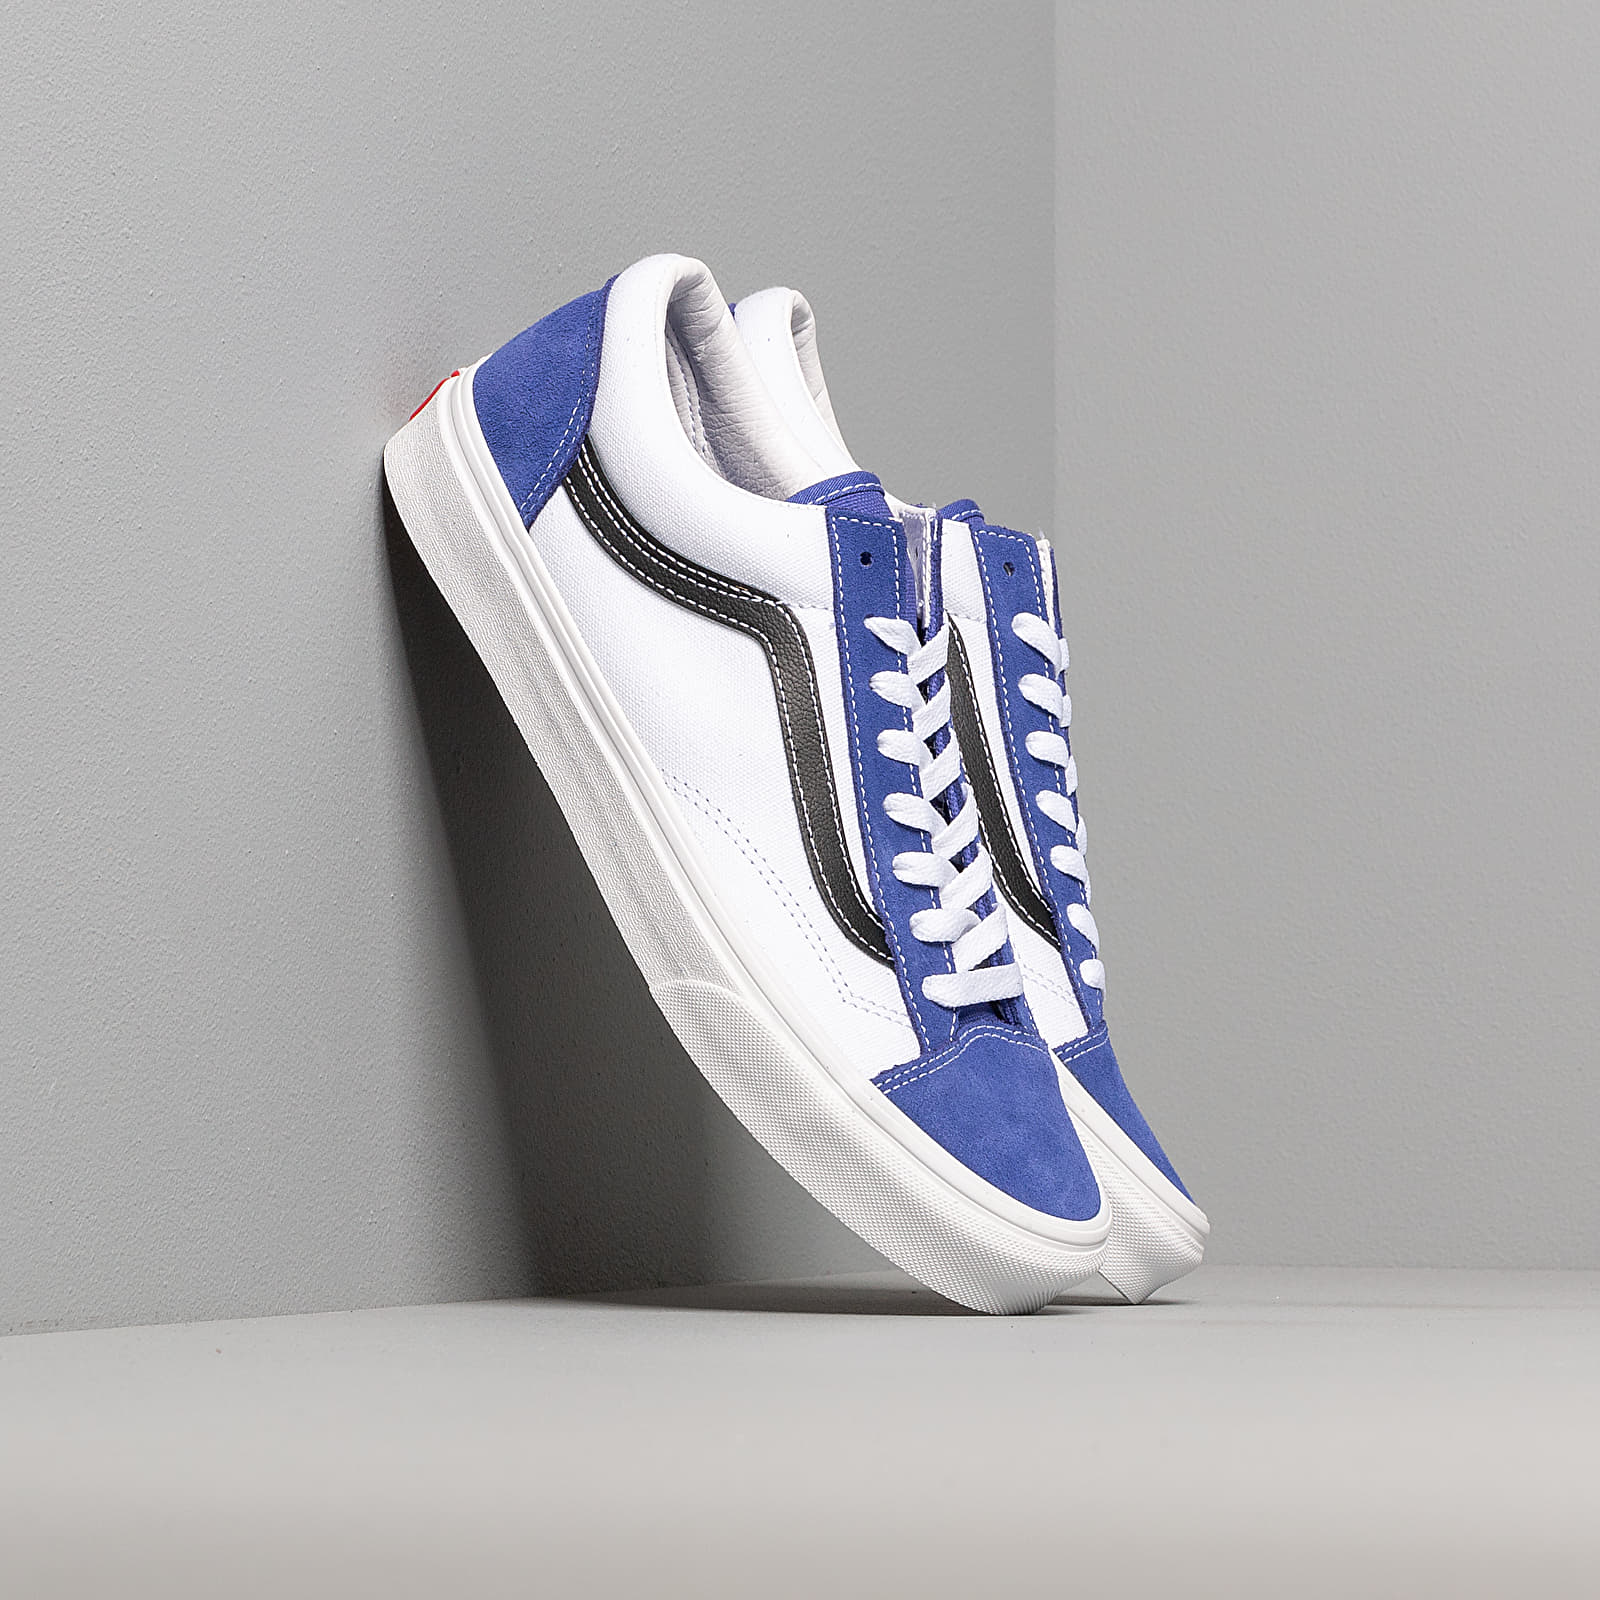 Vans Style 36 (Retro Sport) Royal Blue True White | Footshop